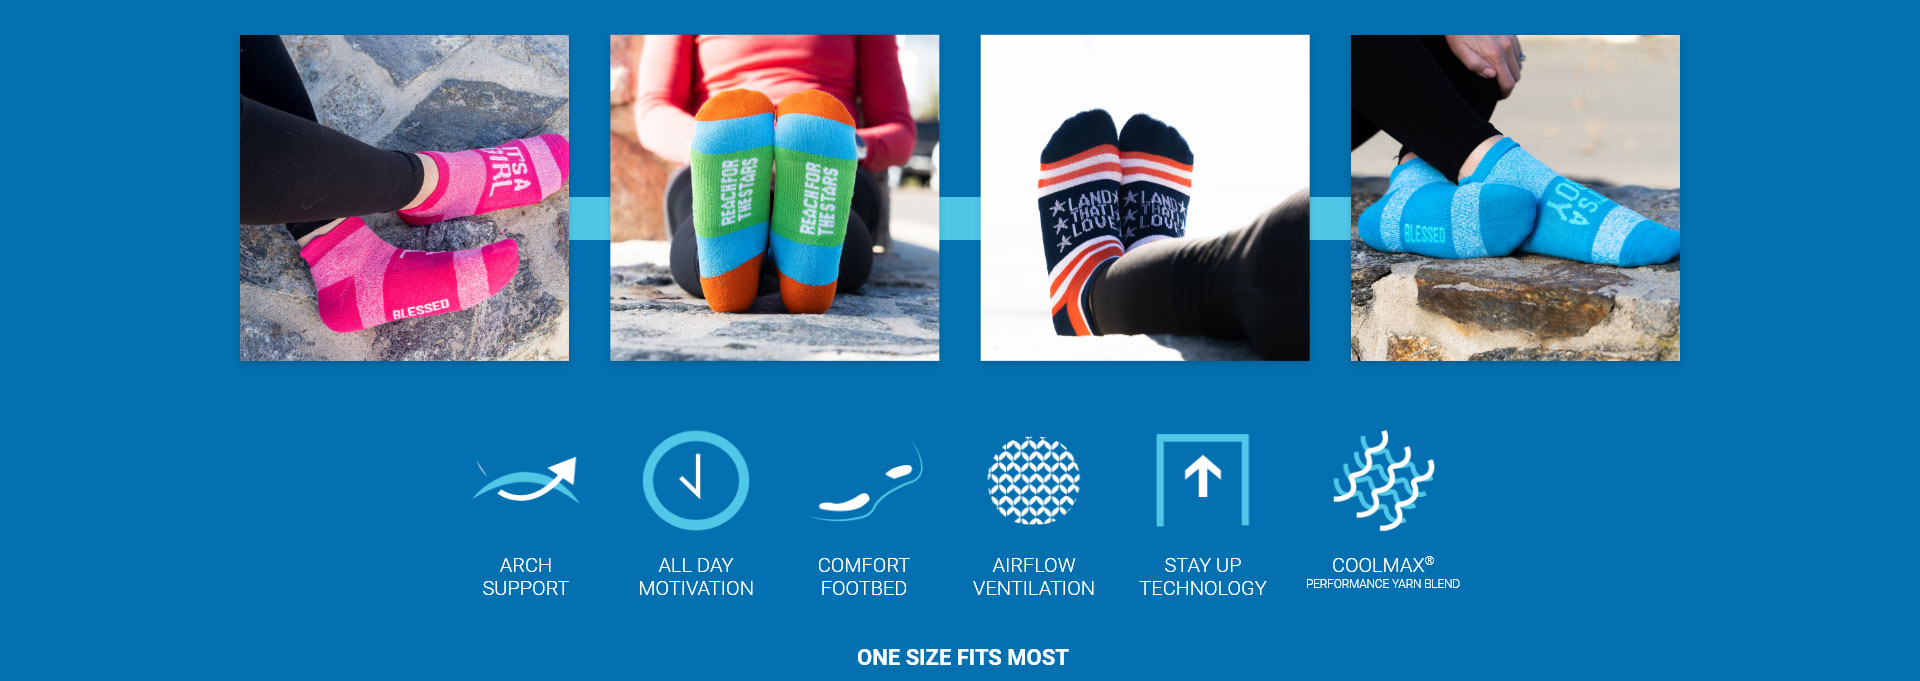 Socrates Socks - Inspirational socks